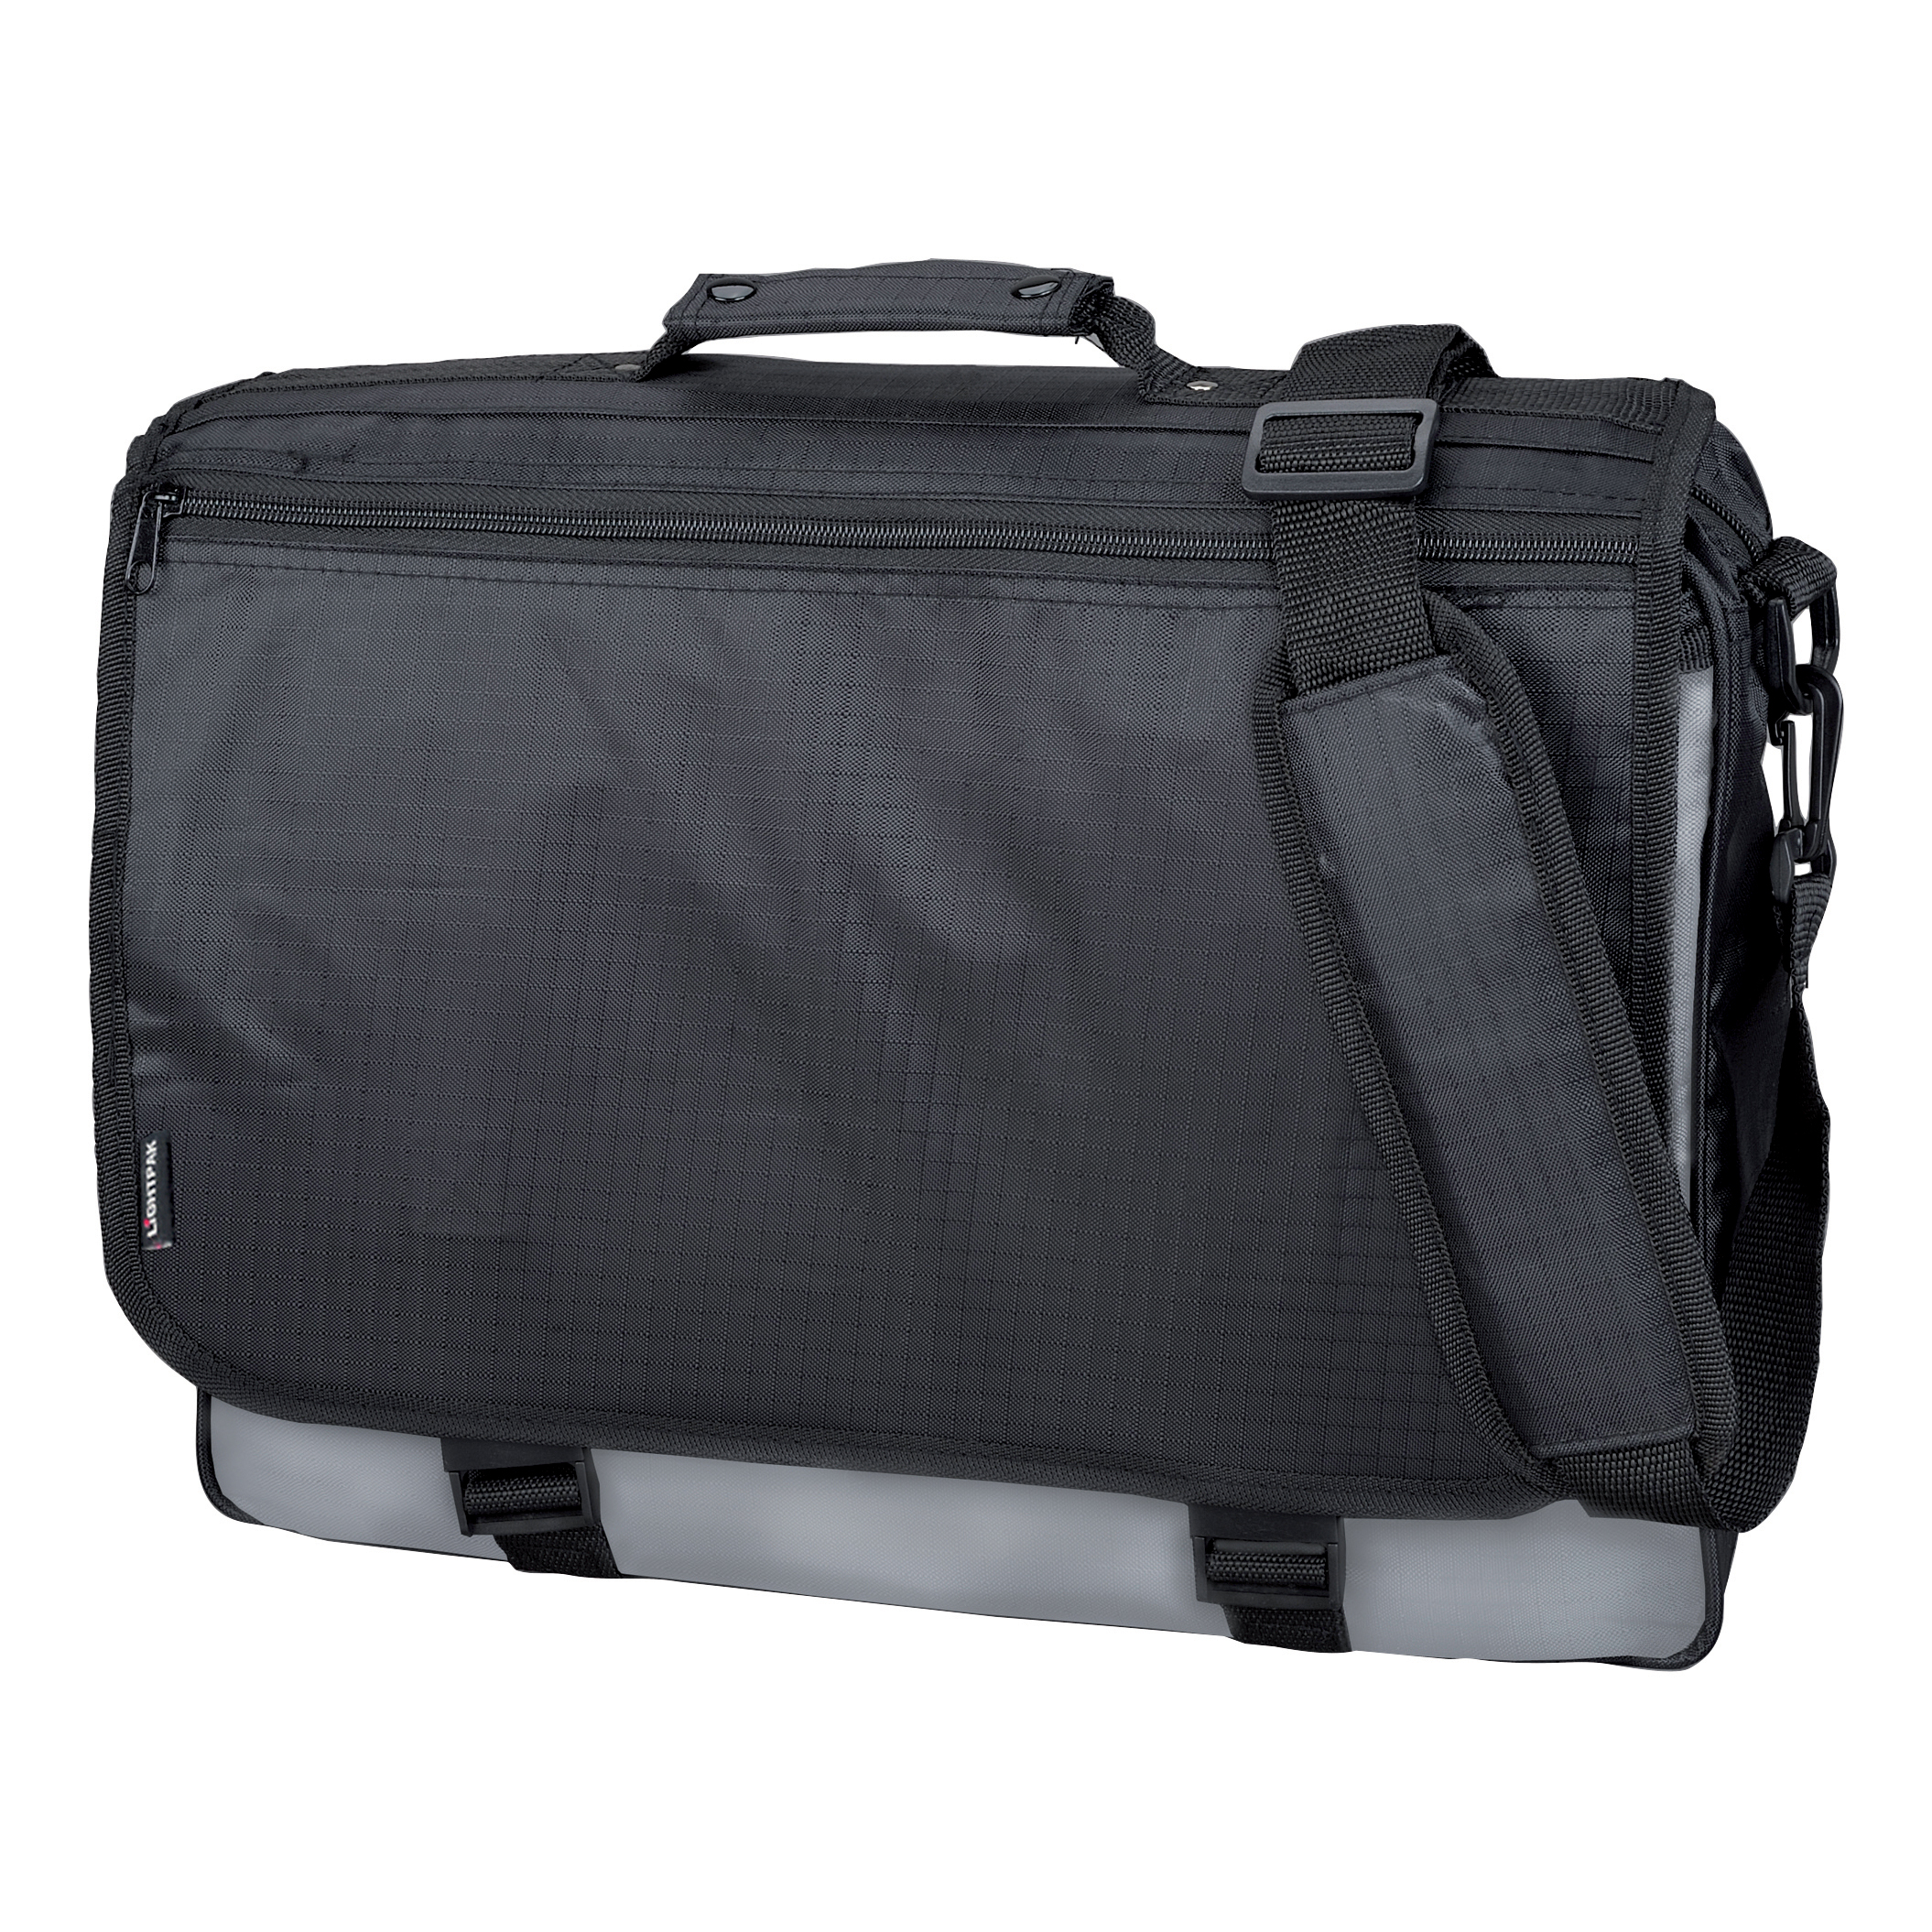 Briefcases & Luggage LightPak Wave Messenger Bag Polyester Black/Grey Ref 46069